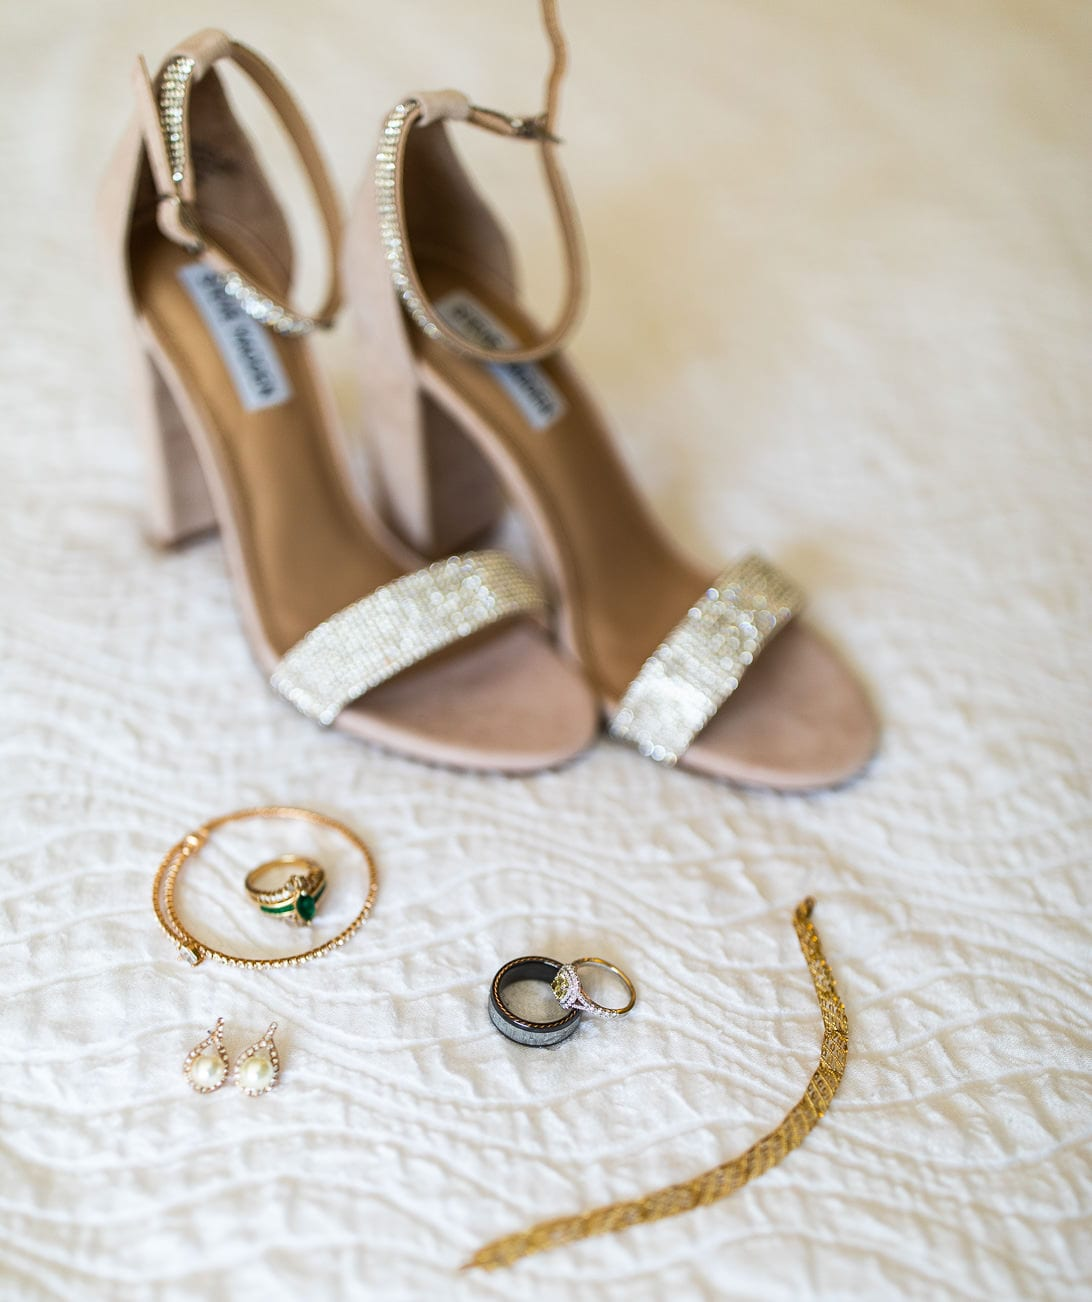 Wedding Details Shoes and Jewelry